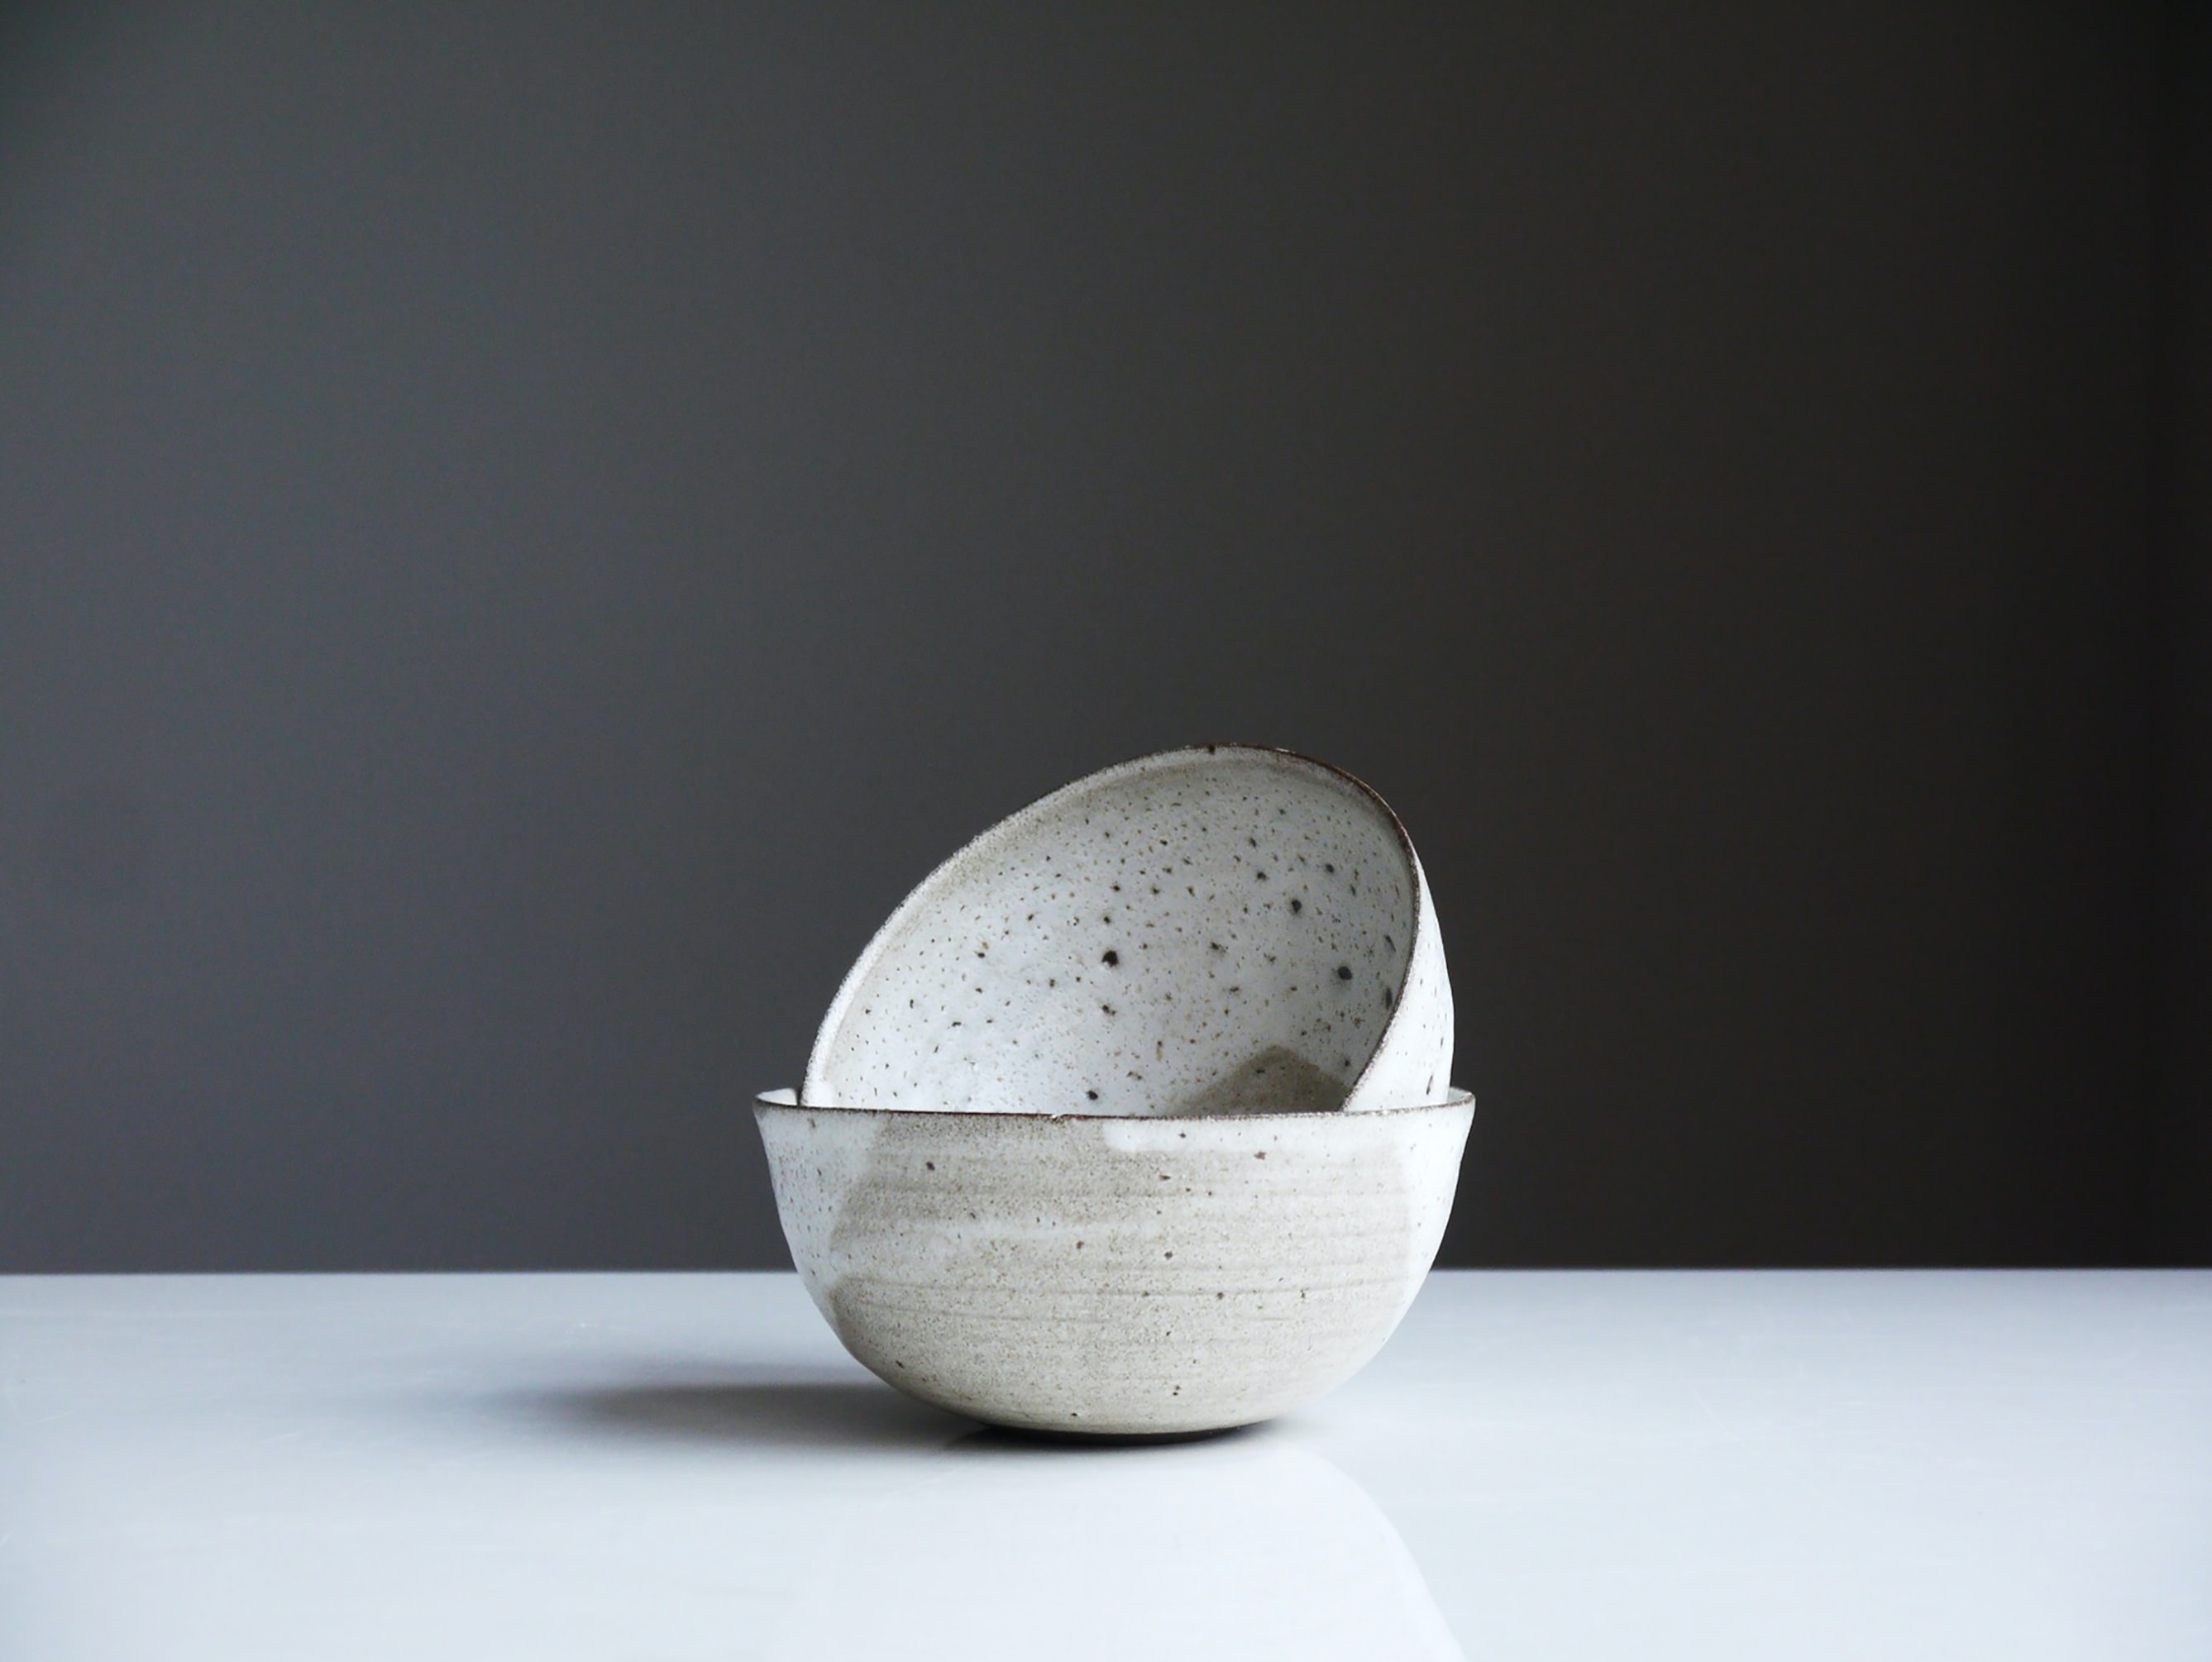 two white ceramic bowls